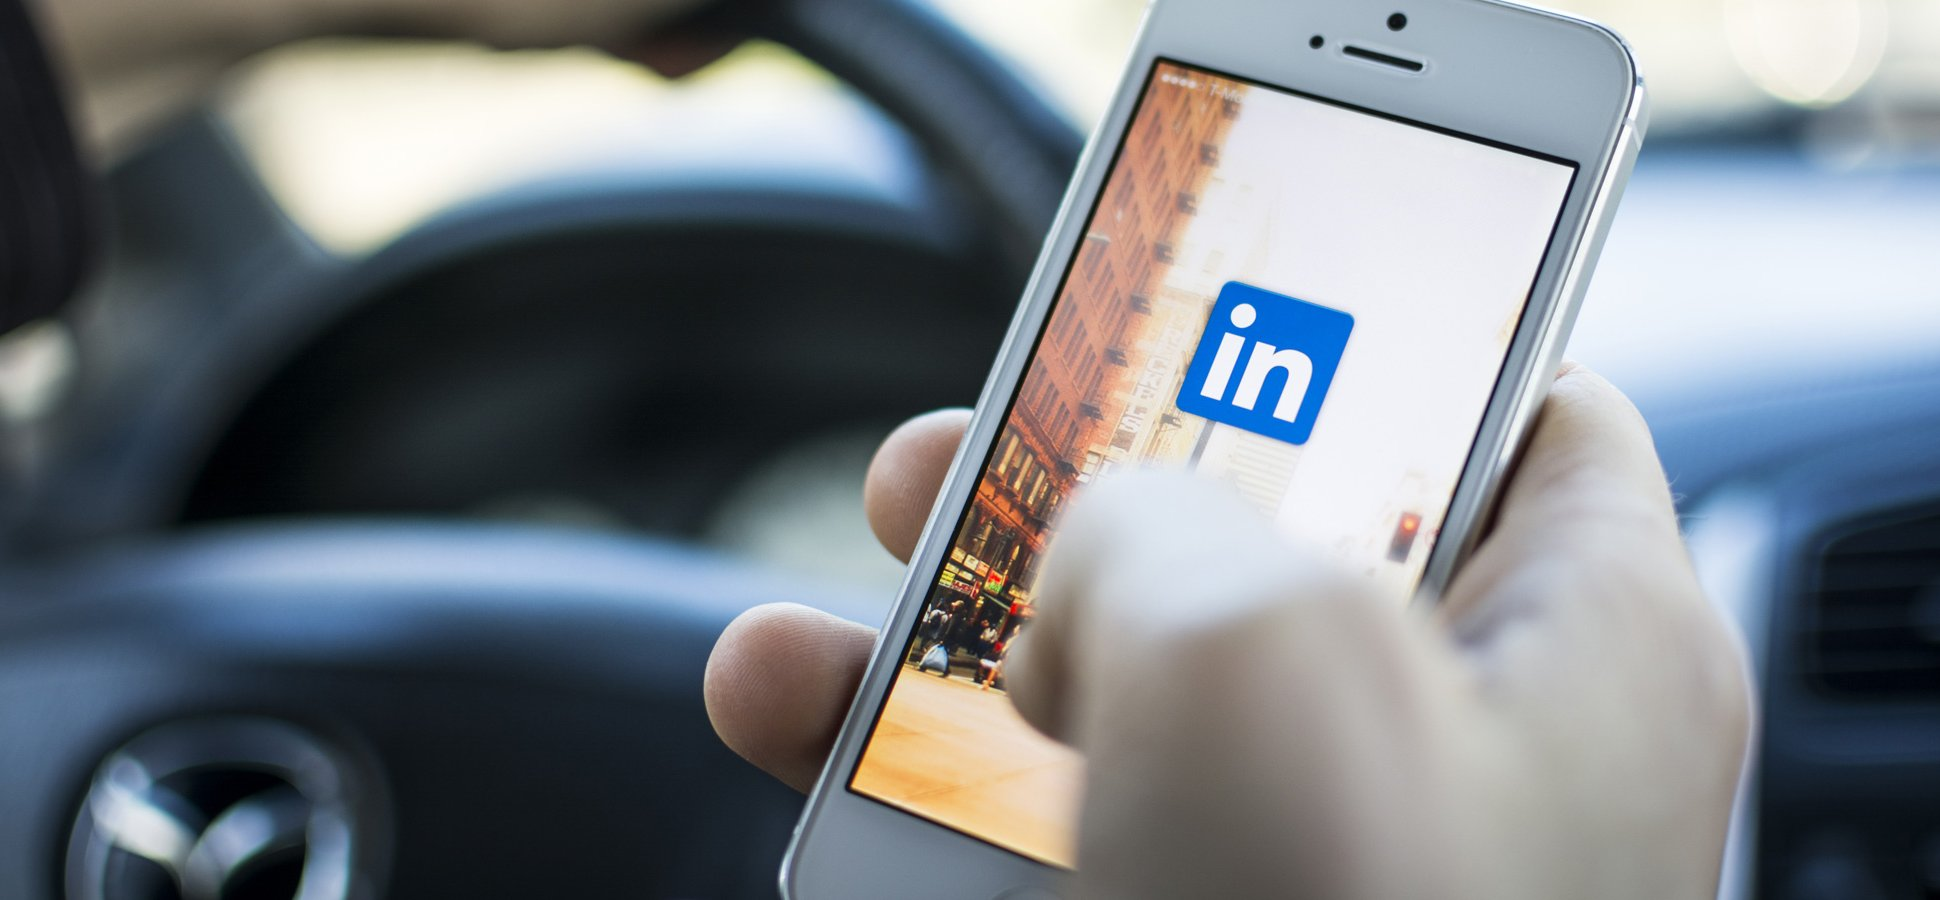 Linking Up On LinkedIn? Odds Are You're Doing It All Wrong